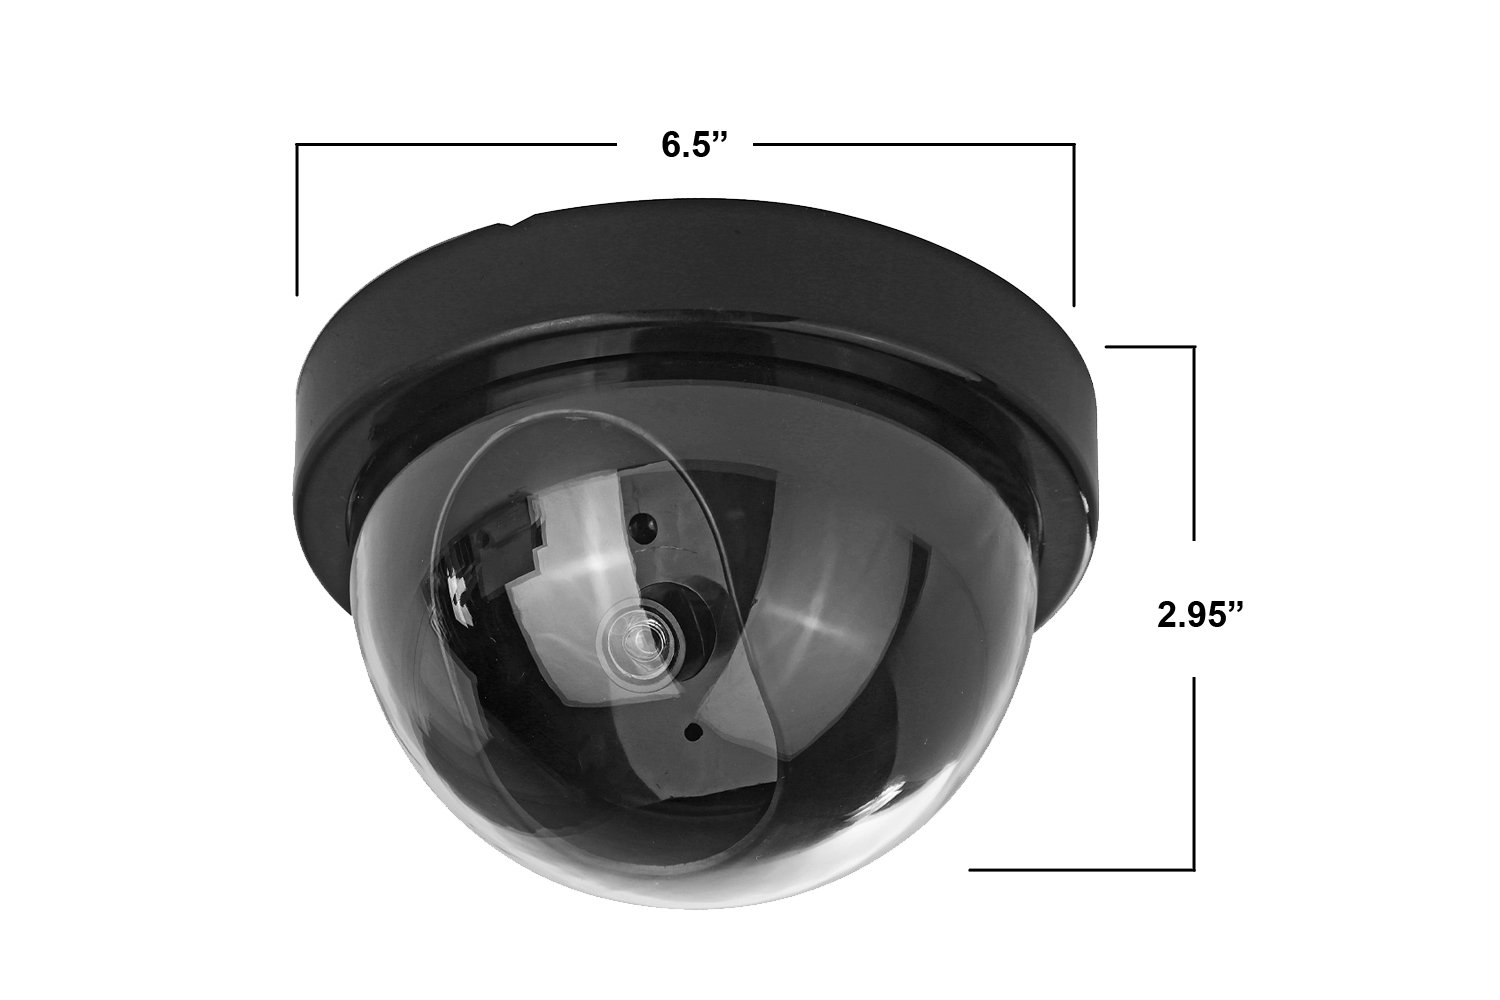 (4 Pack) Fake Dummy Security CCTV Dome Camera With Realistic Look Recording Flashing Red LED Light Indoor And Outdoor Use, For Homes & Business- By Armo by Armo (Image #2)